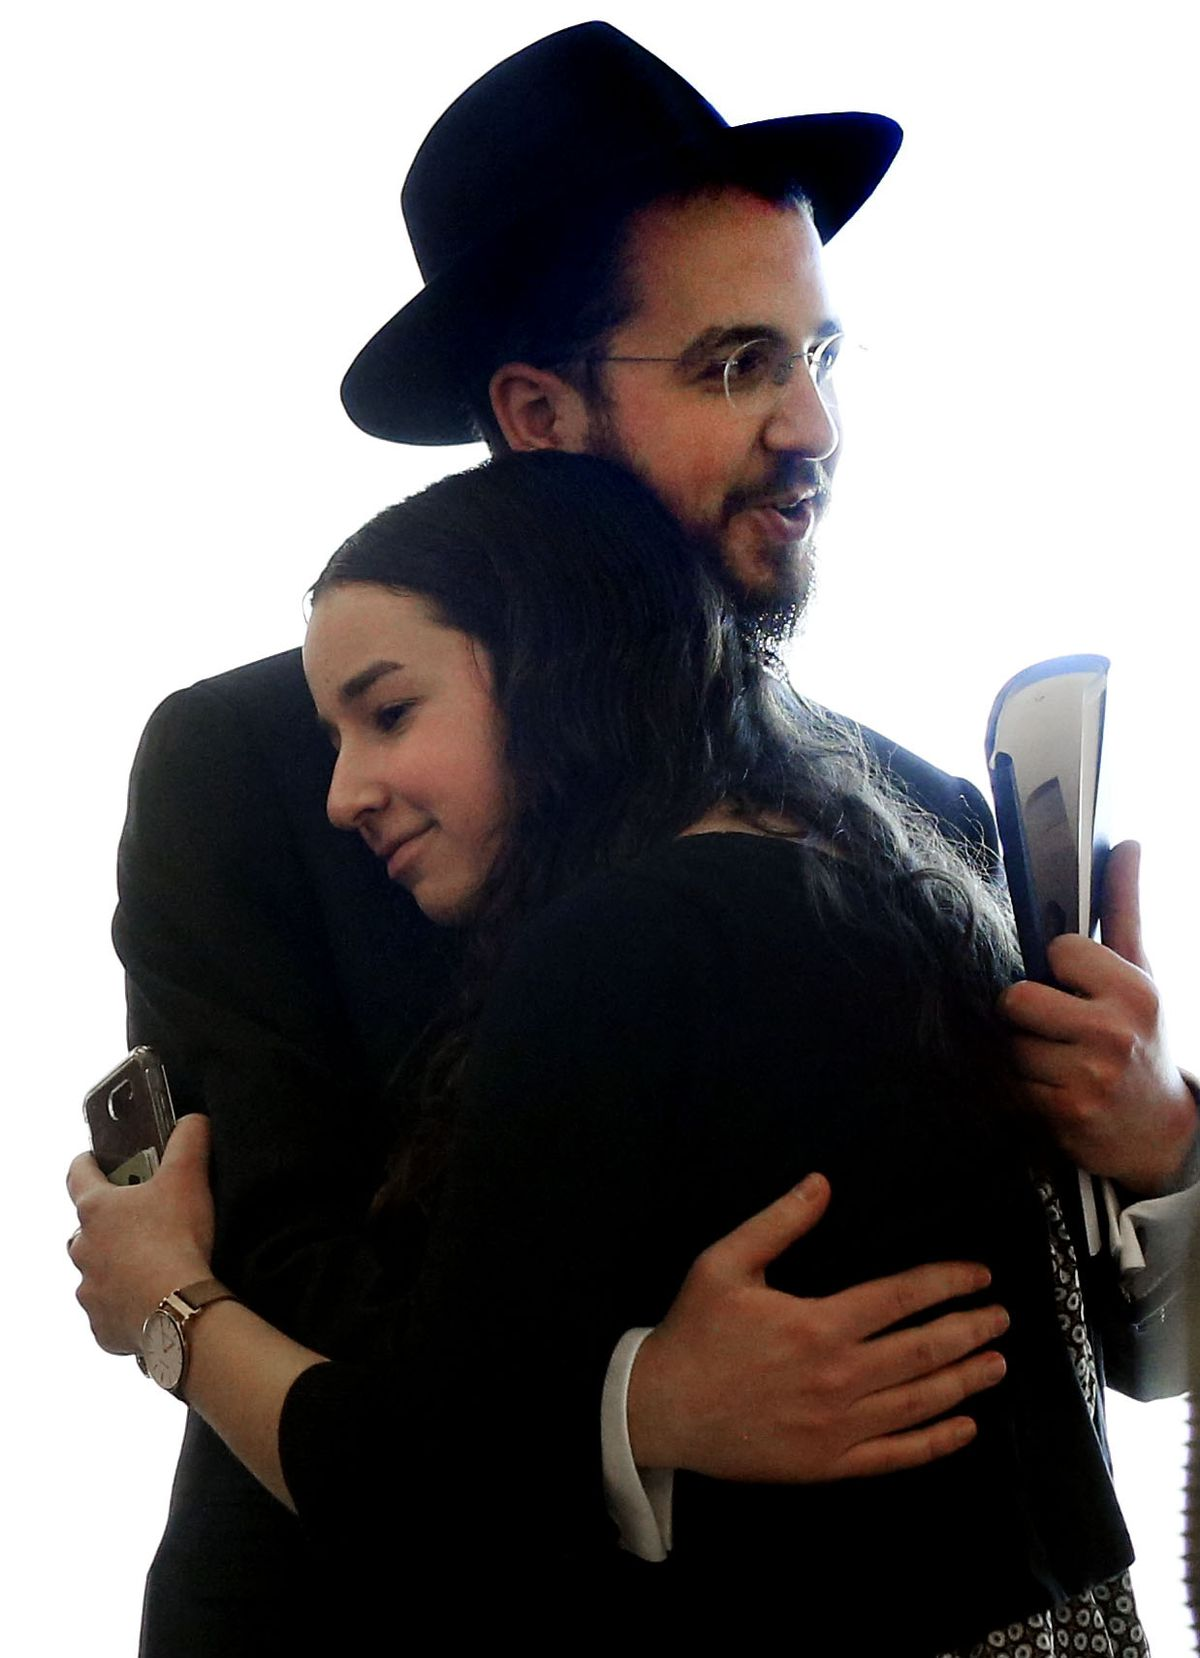 """Rabbi Avrohom """"Avremi"""" Zippel hugs his sister, Sarah Zippel, after the sentencing of Alavina Fungaihea Florreich at the Matheson Courthouse in Salt Lake City on Thursday, March 12, 2020. Florreich, the longtime nanny convicted of sexually abusing Zippel, has been ordered to serve 25 years to life in prison."""